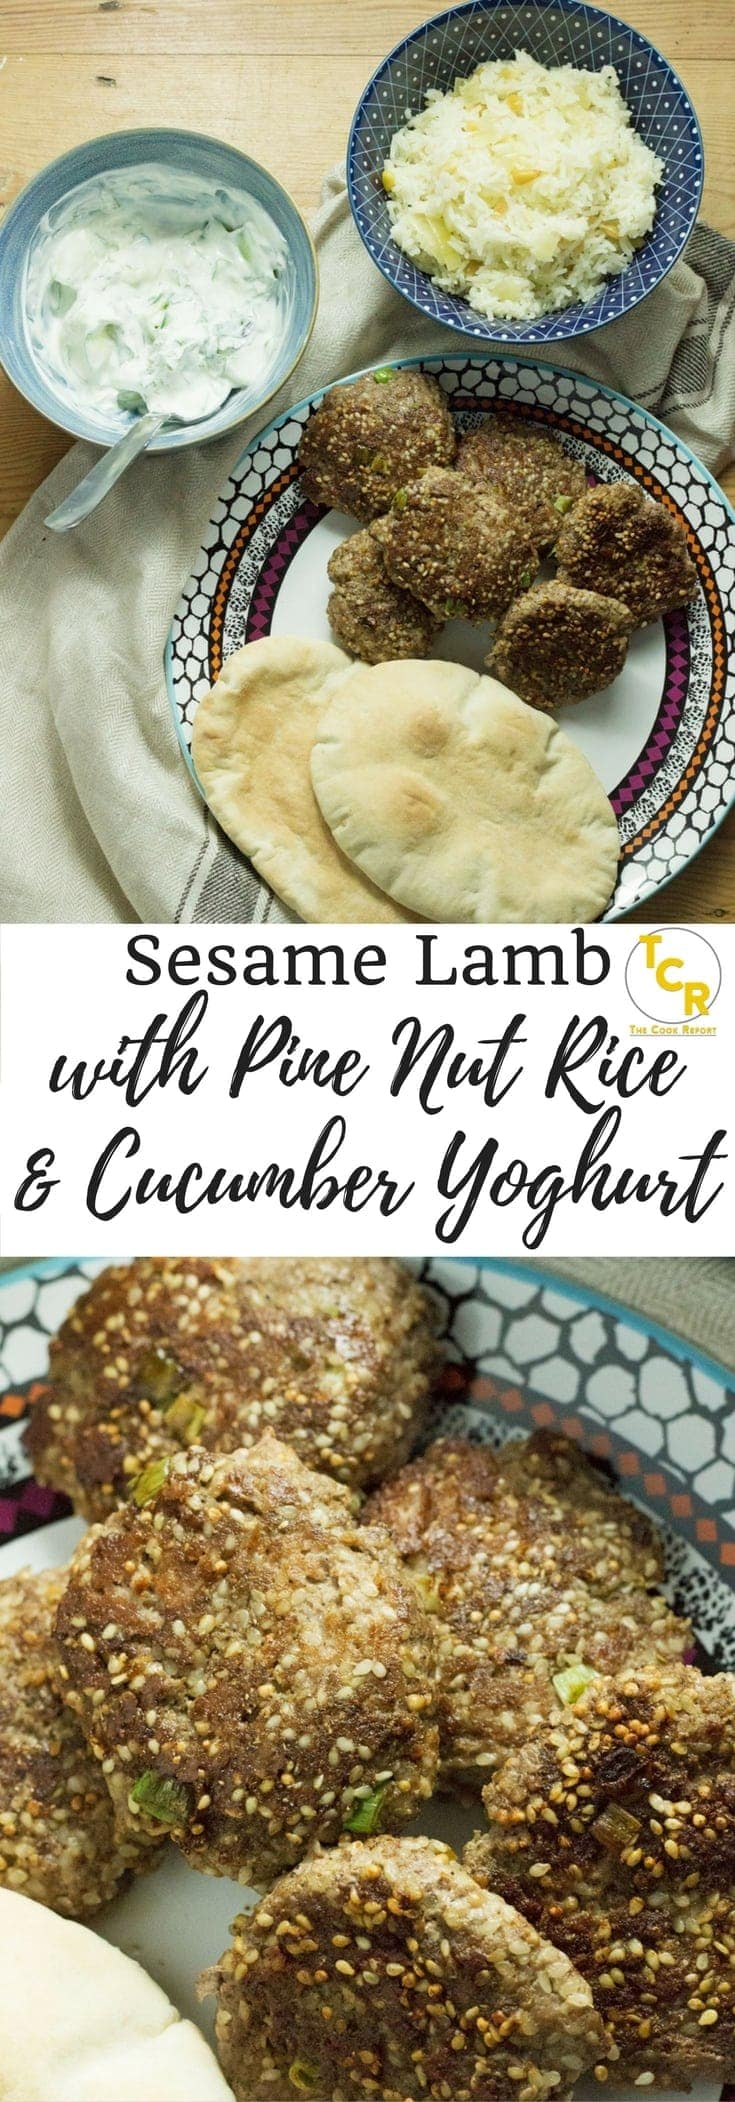 This sesame lamb recipe tastes delicious stuffed in a pitta with some cucumber and mint yoghurt drizzled on top and some pine nut rice on the side.